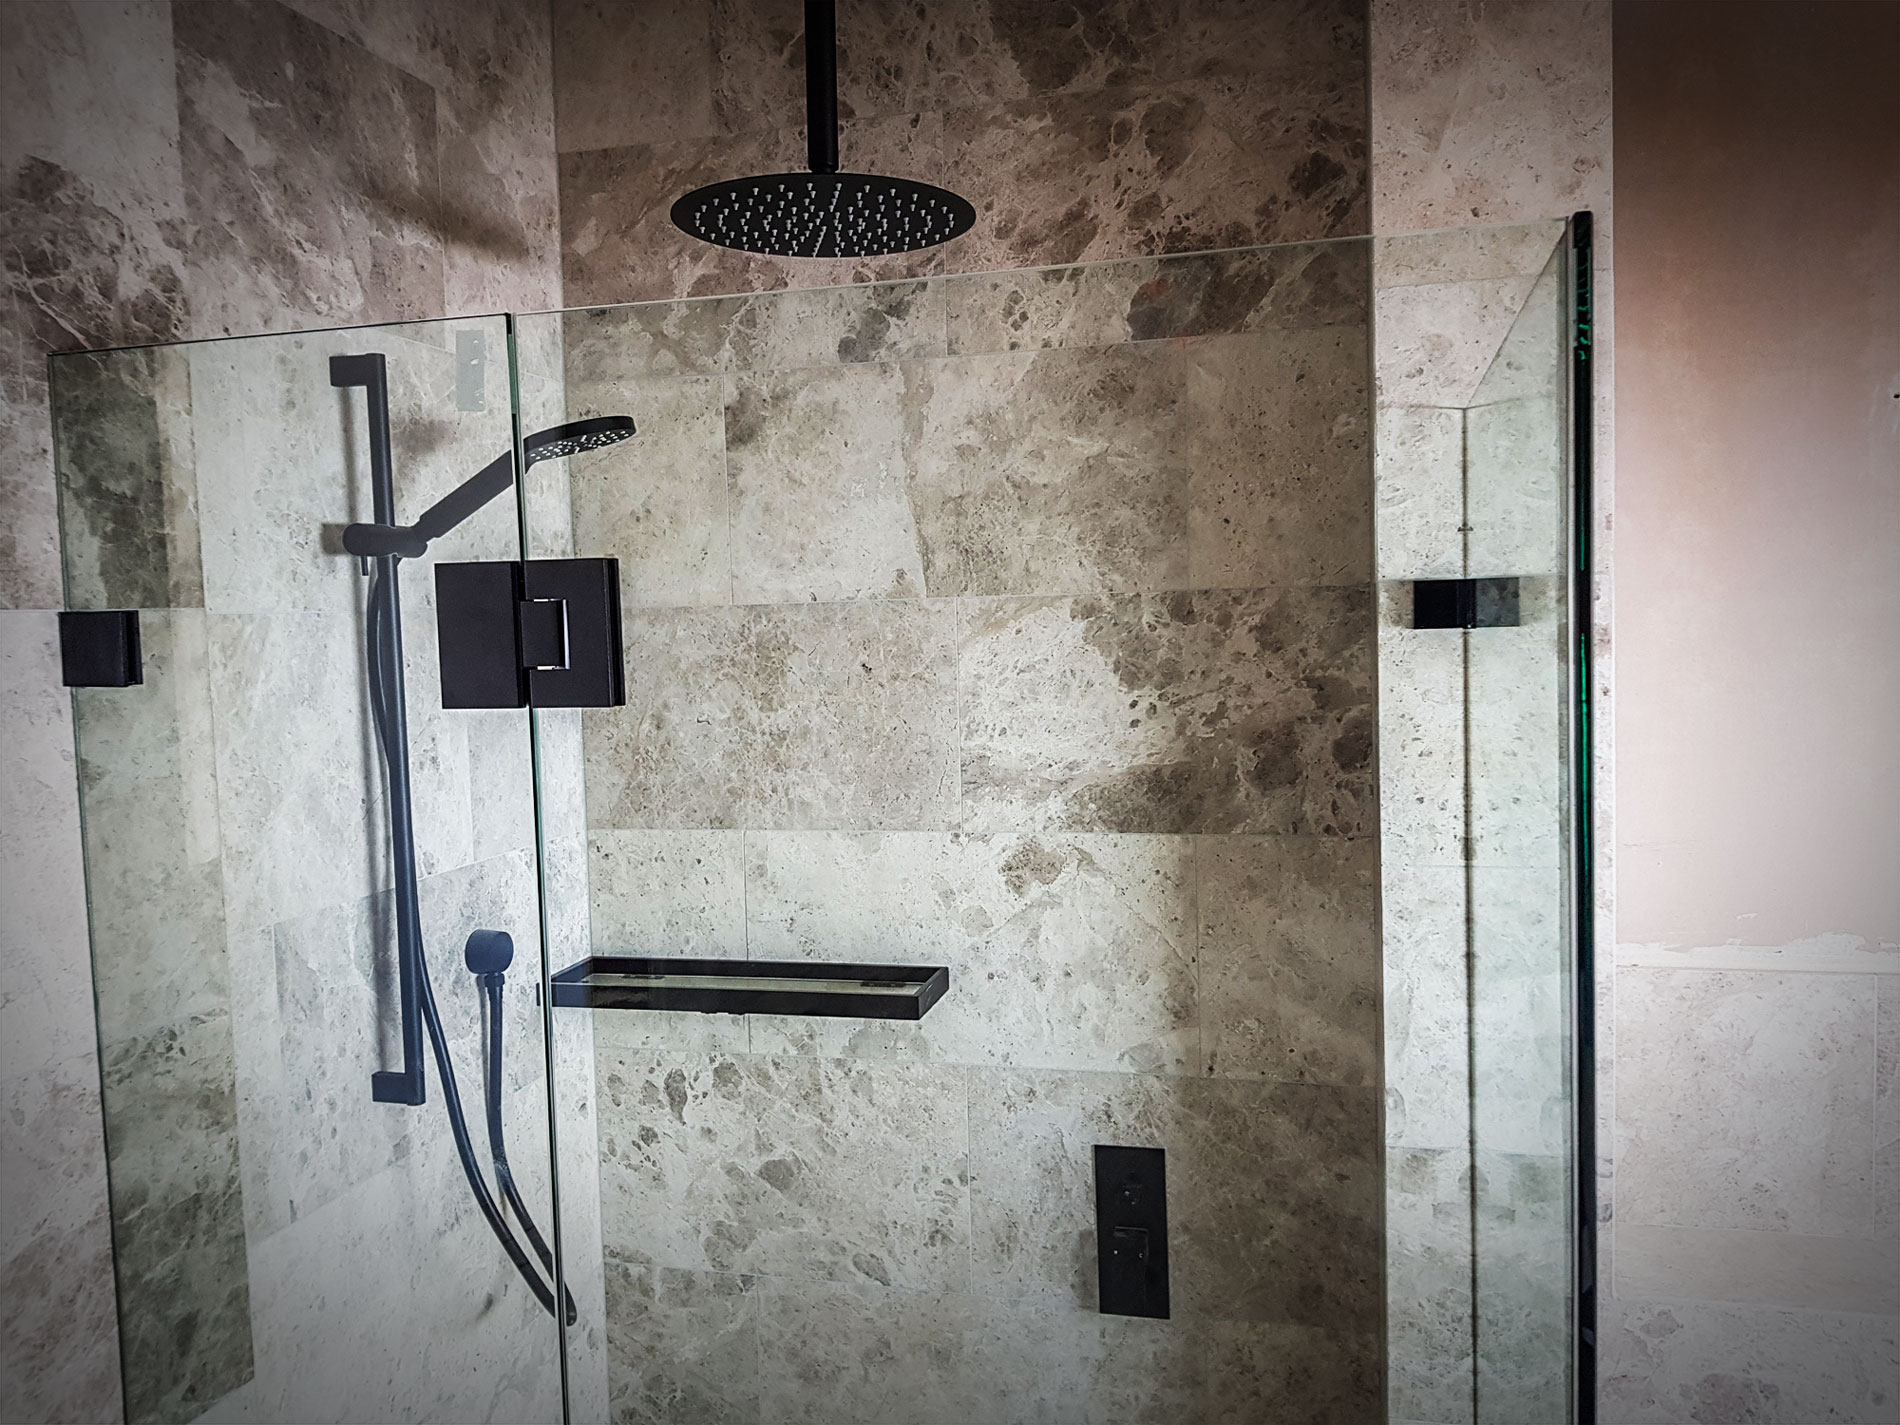 Frameless Shower Screens Installation in Parramatta, Arncliffe, & Ryde